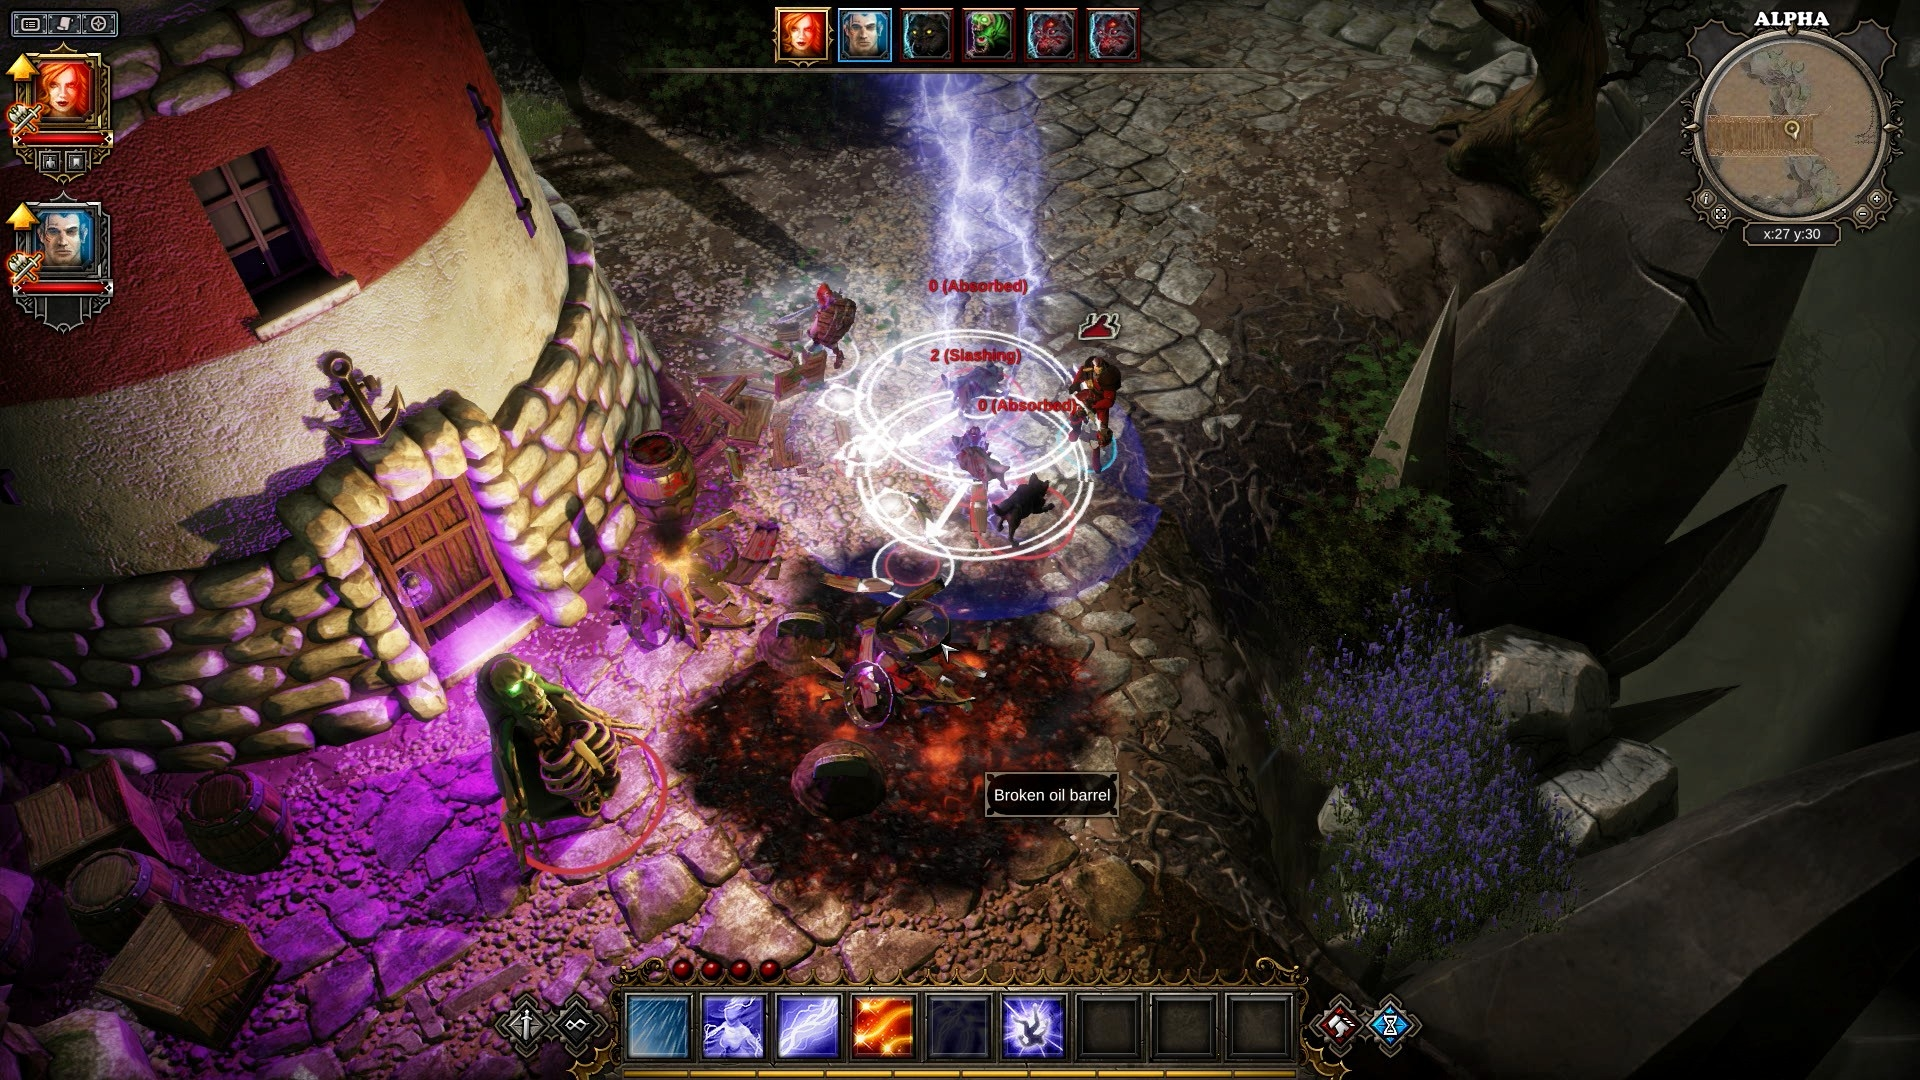 Why Divinity: Original Sin Might Be the RPG You've Been Waiting For ...